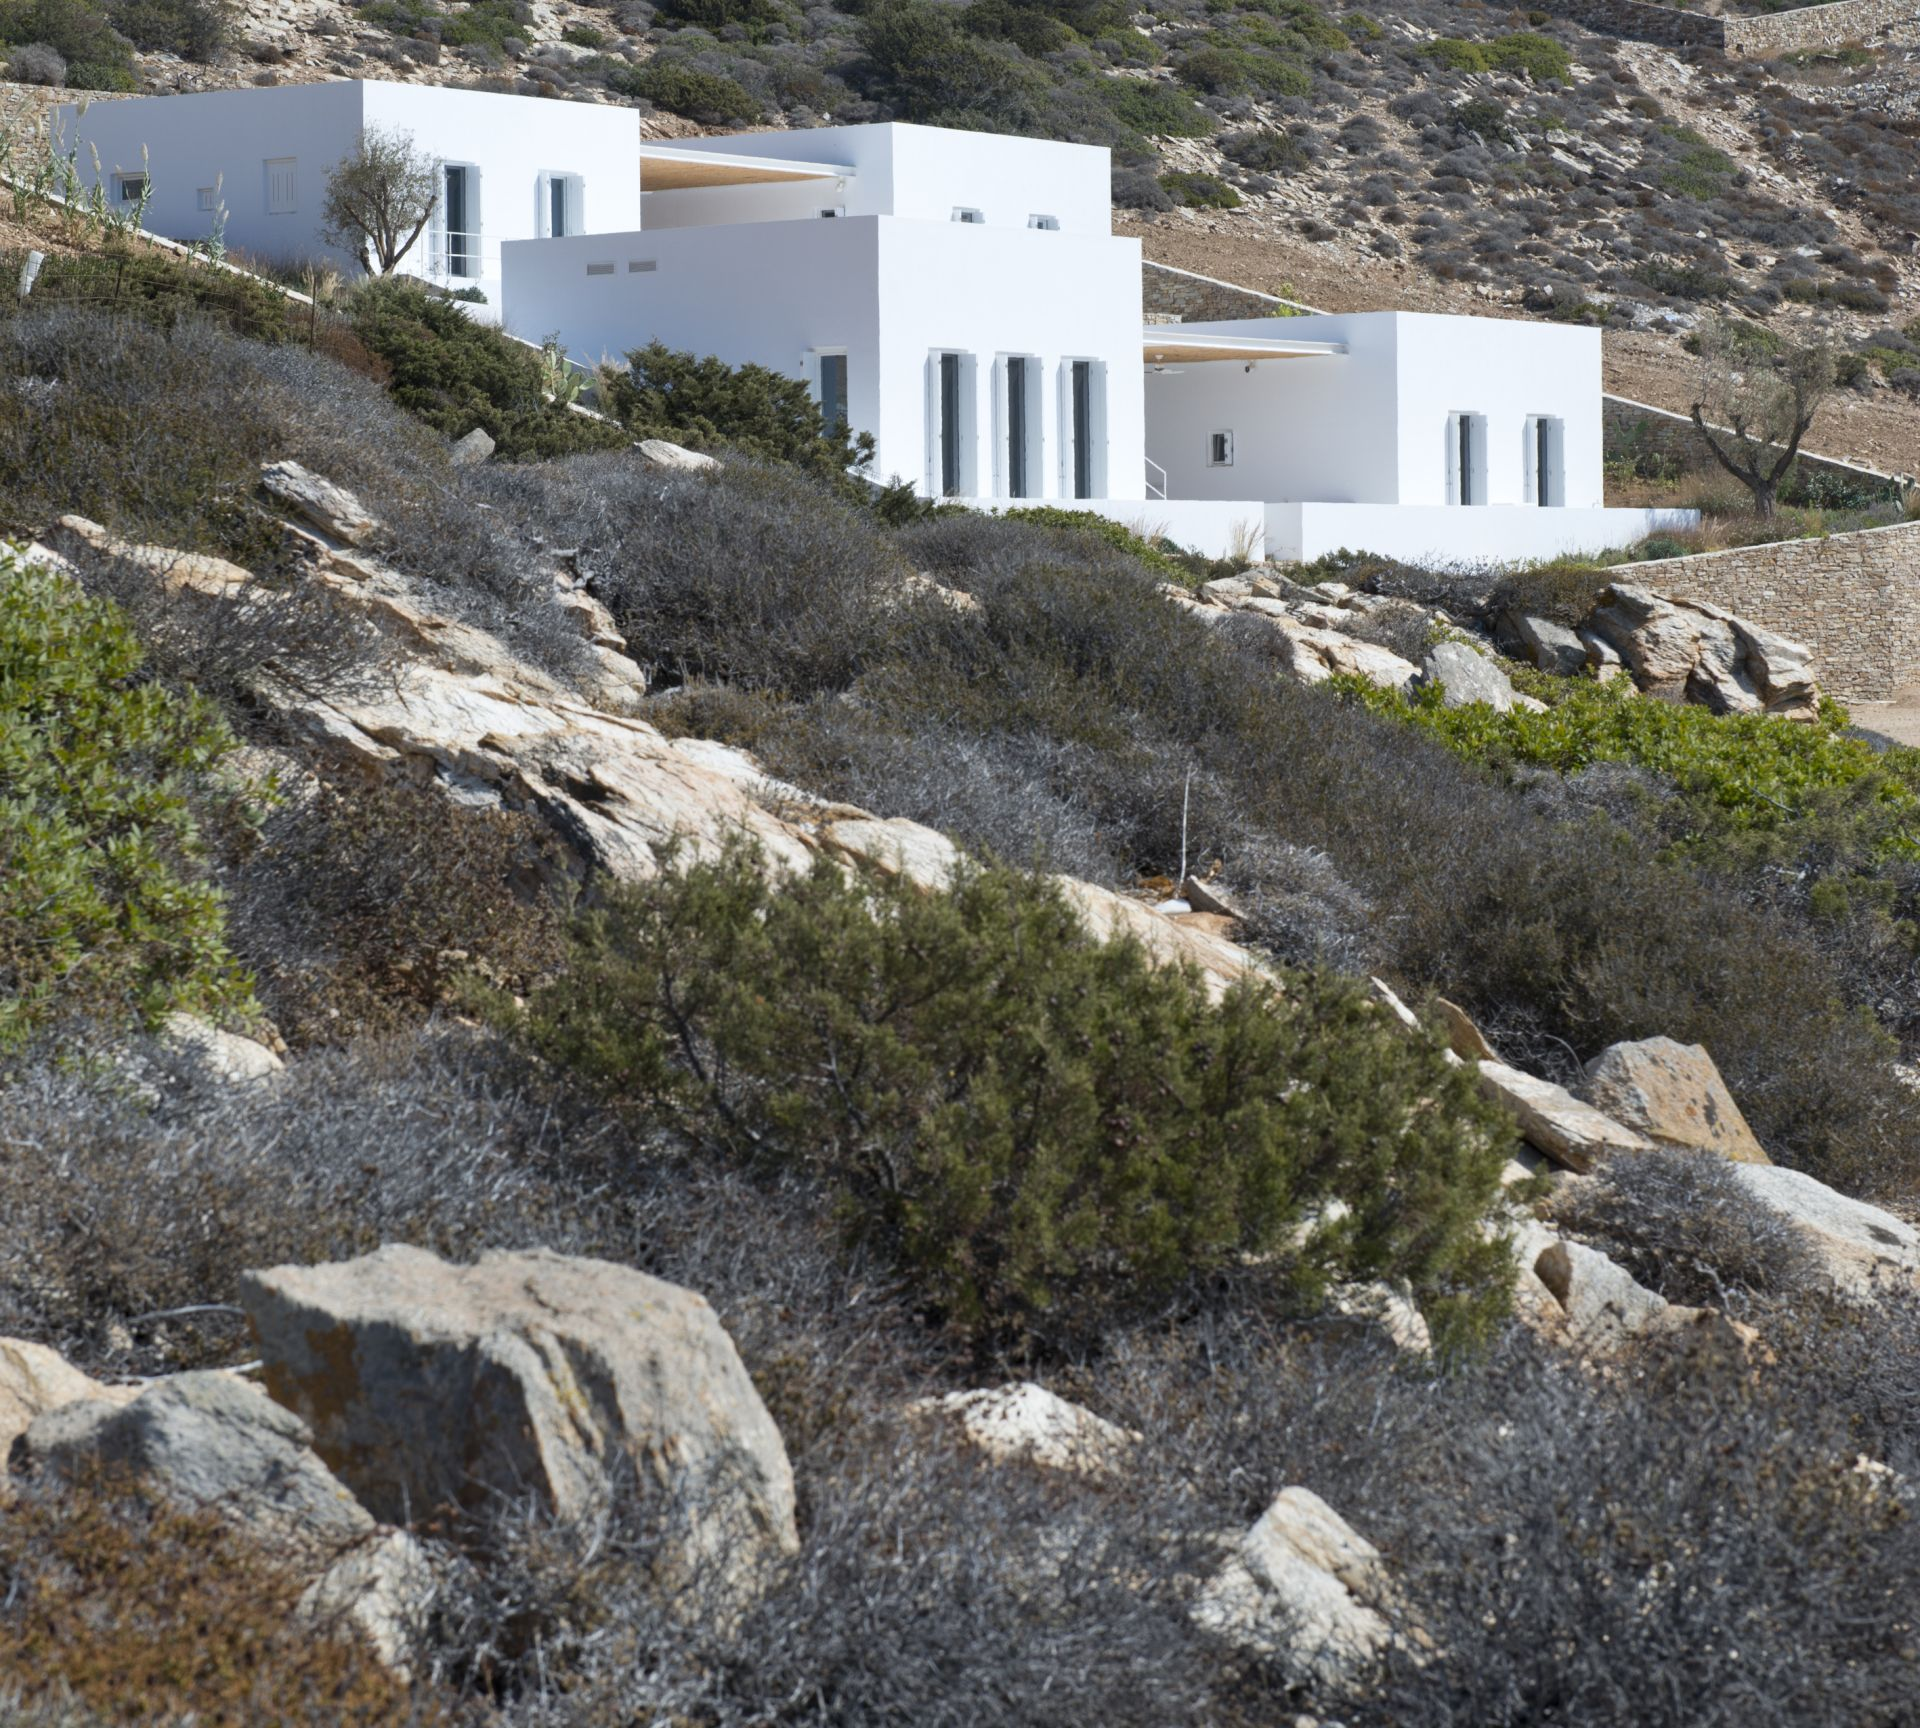 OLIAROS presents: APS House by ARP